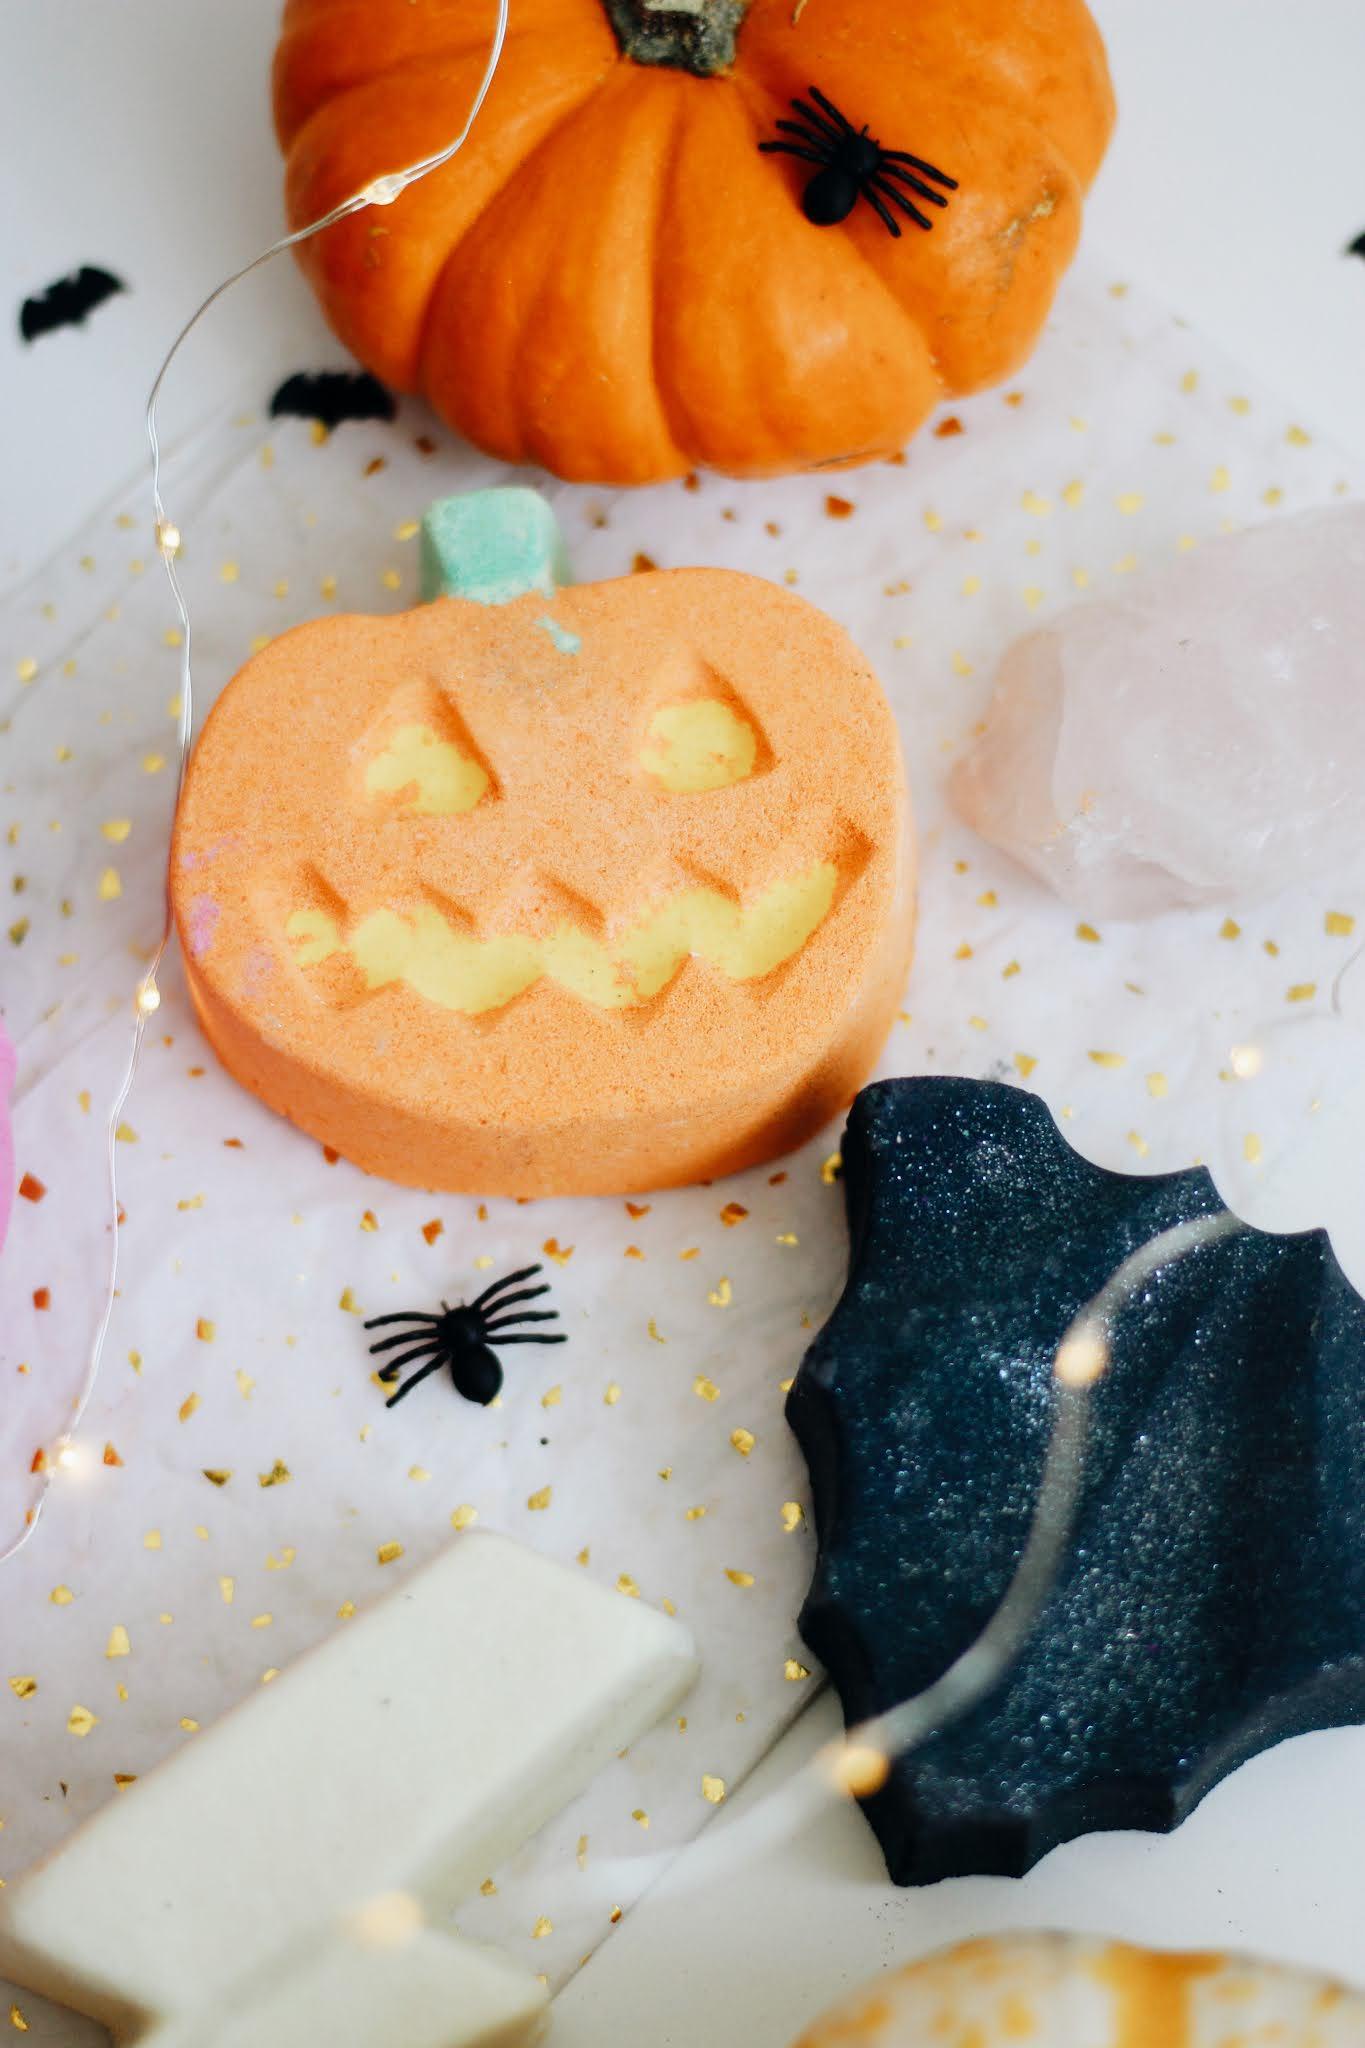 Lush Halloween 2020 Collection